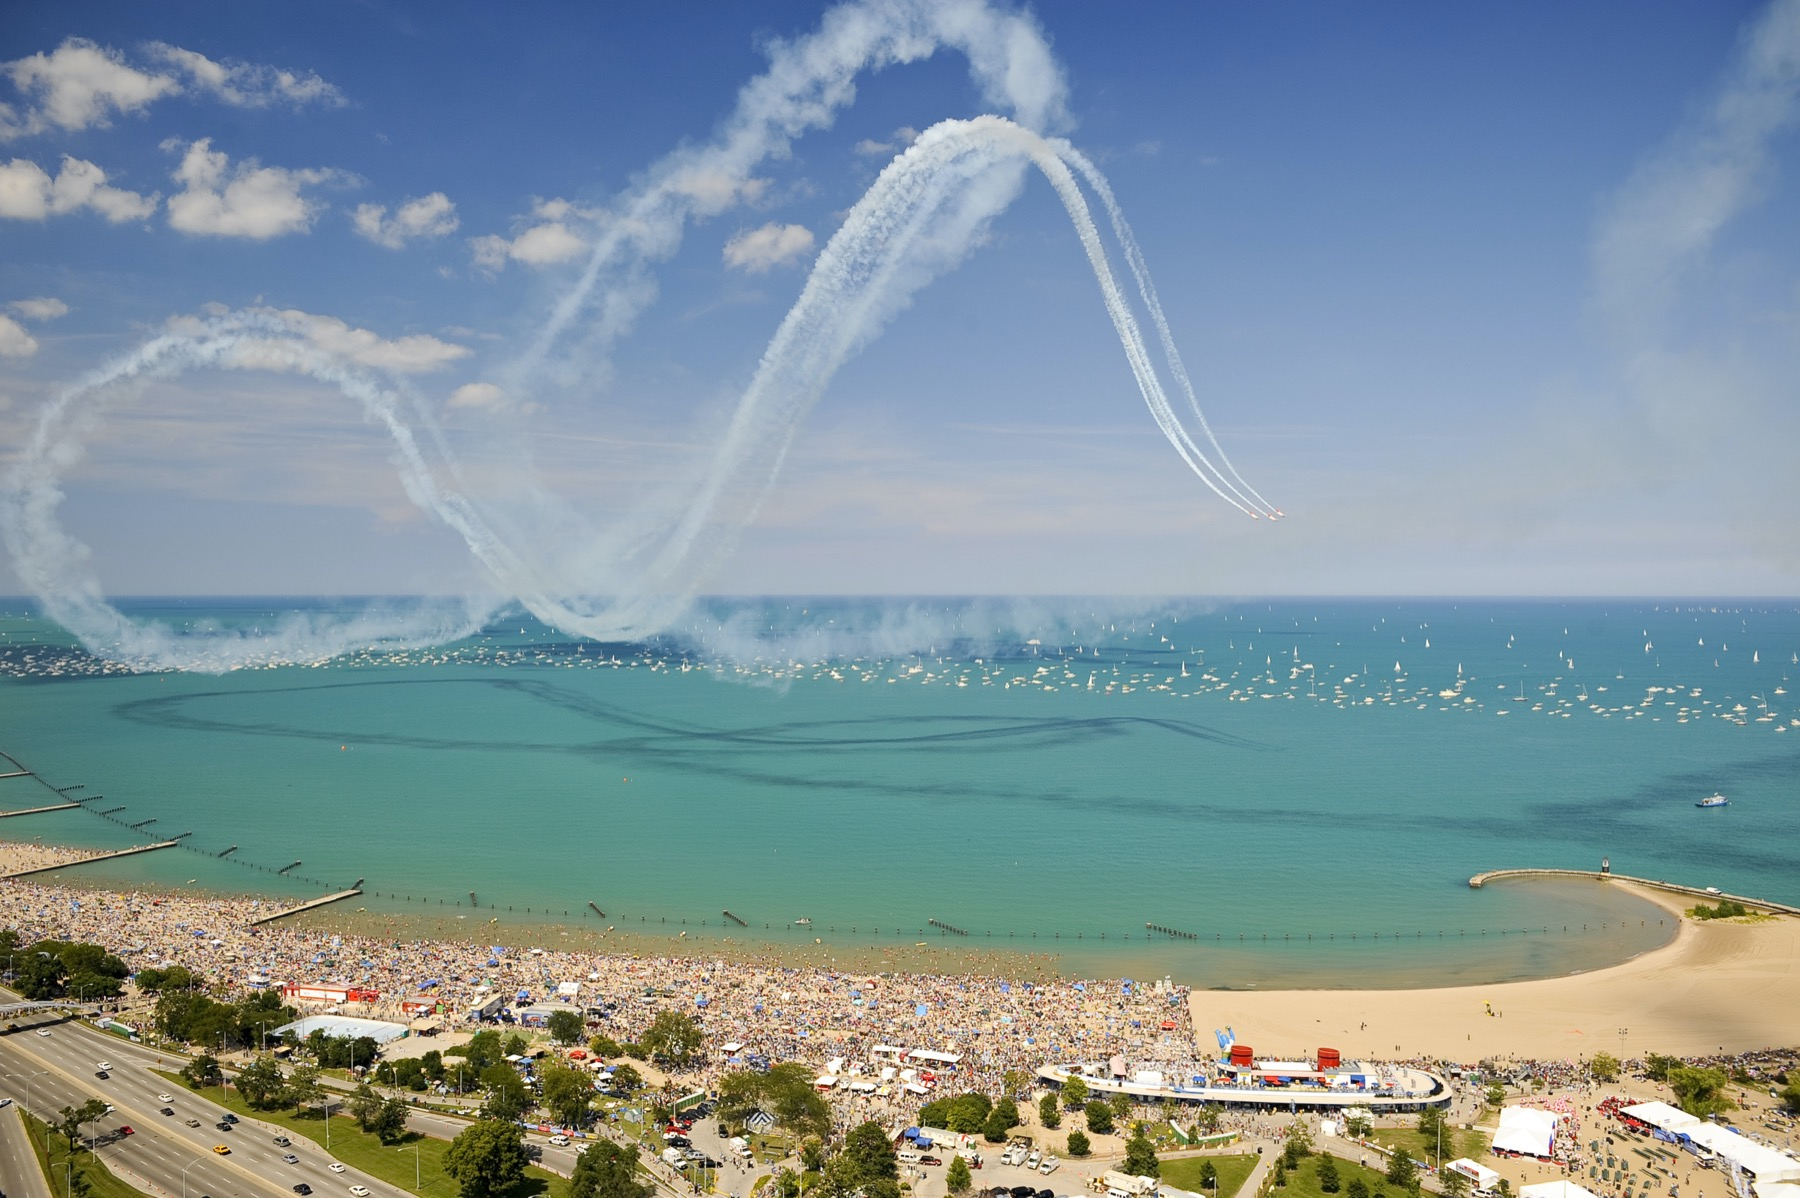 Chicago Air & Water Show